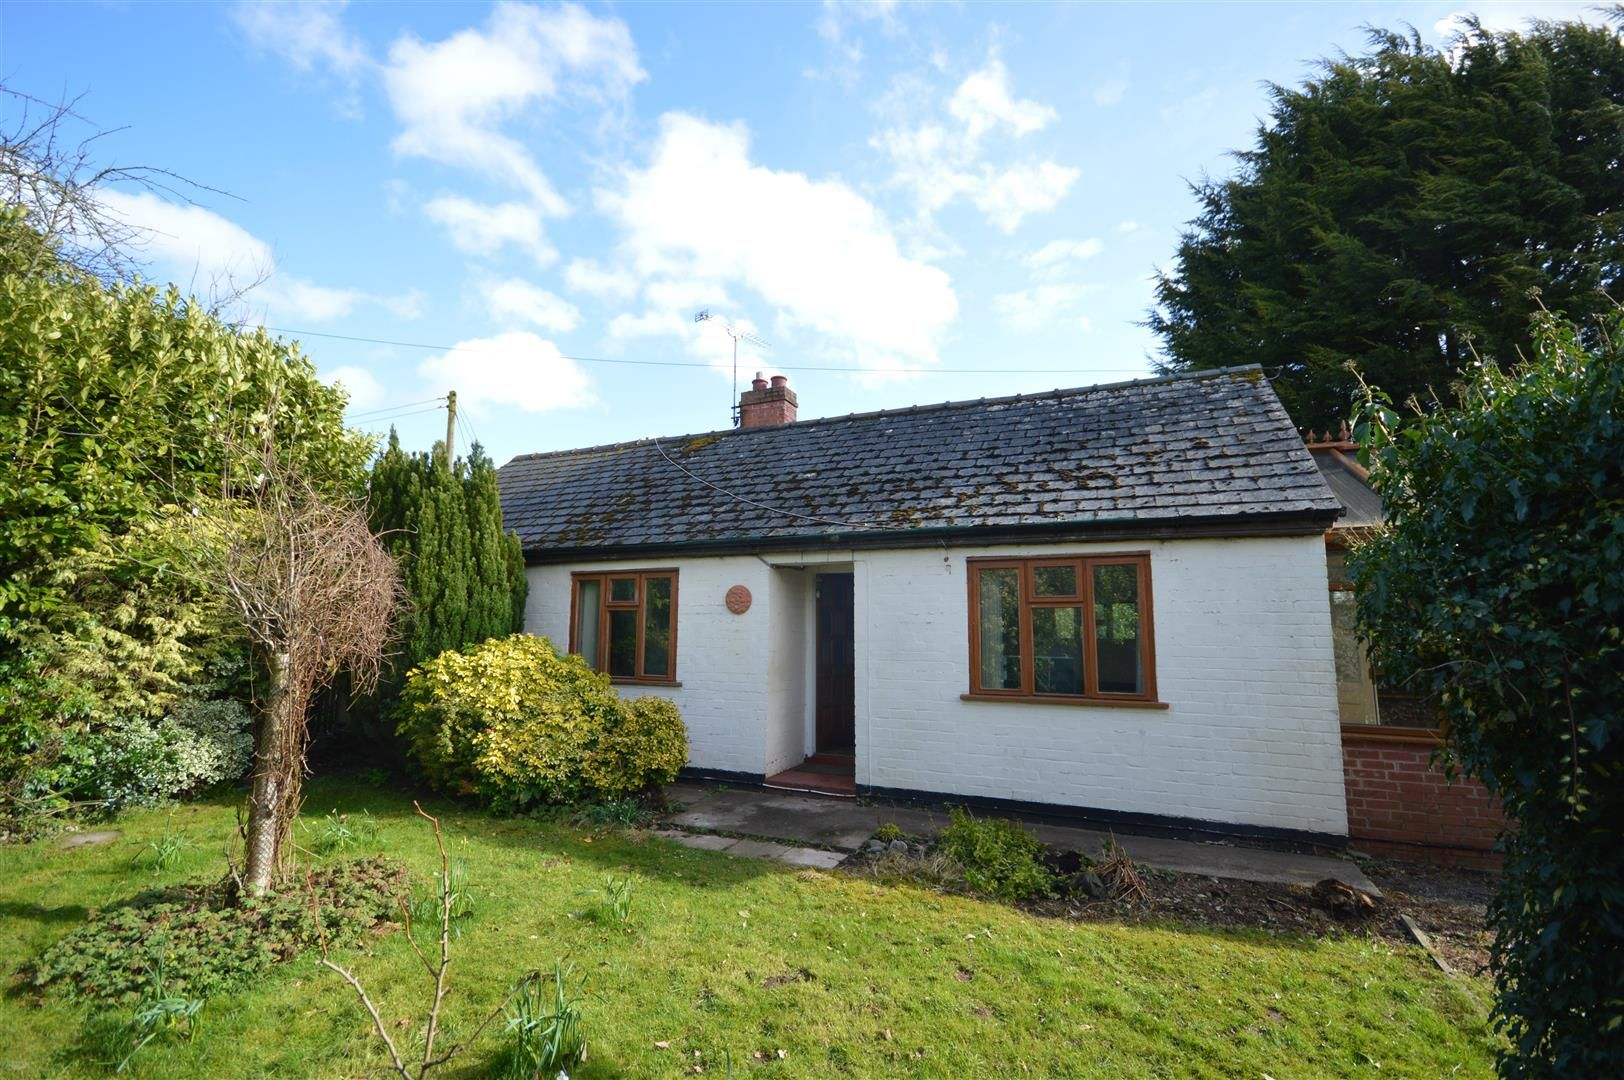 2 bed detached bungalow for sale in Leysters, HR6